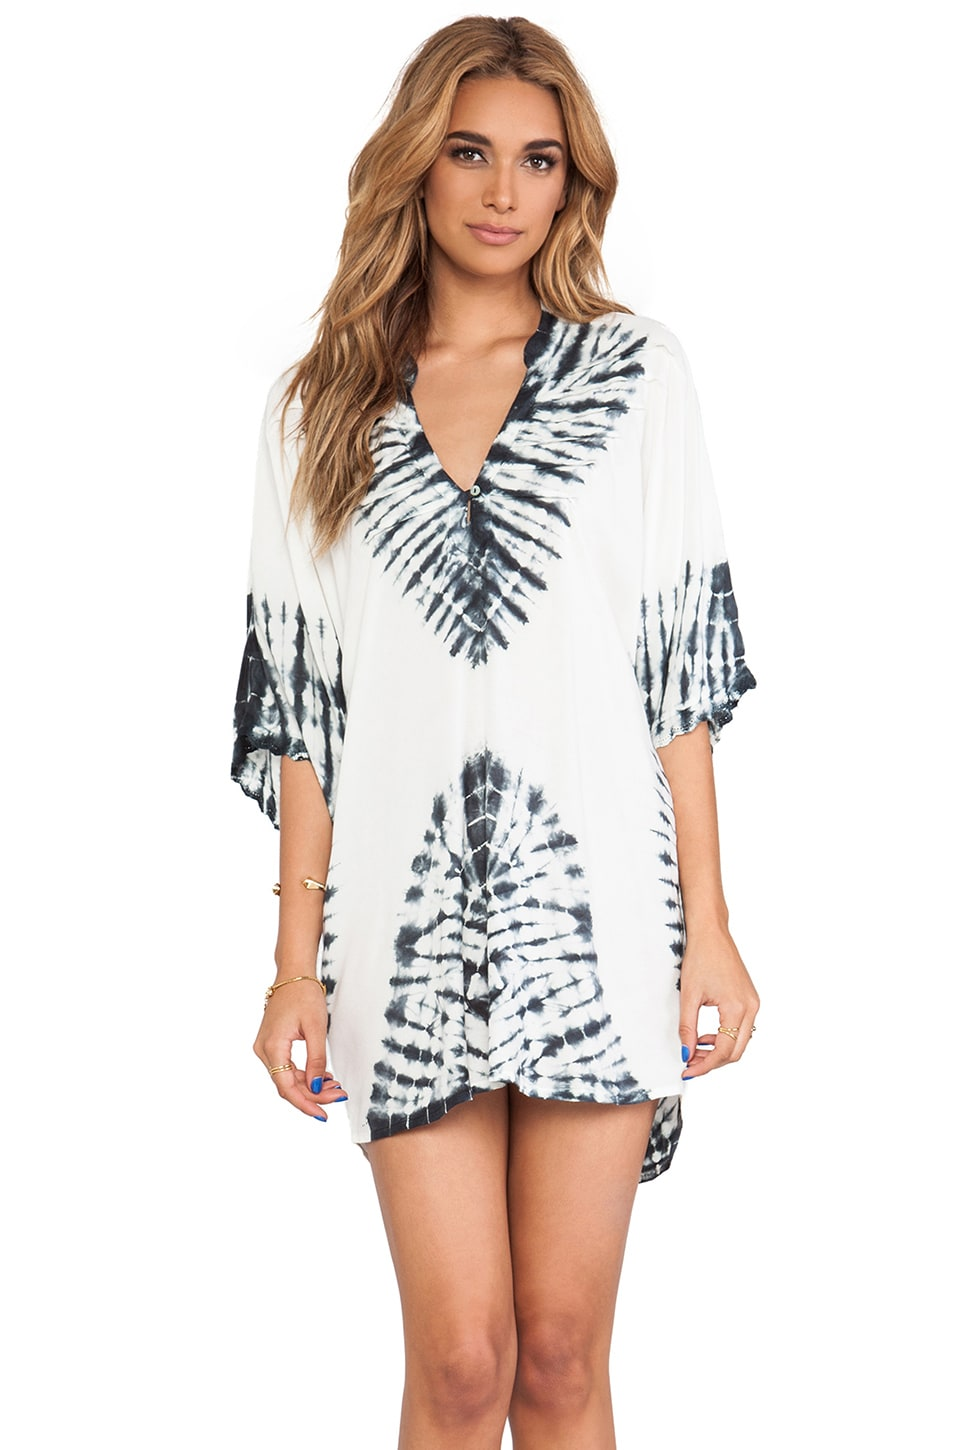 Vix Swimwear Oba Caftan in Solid